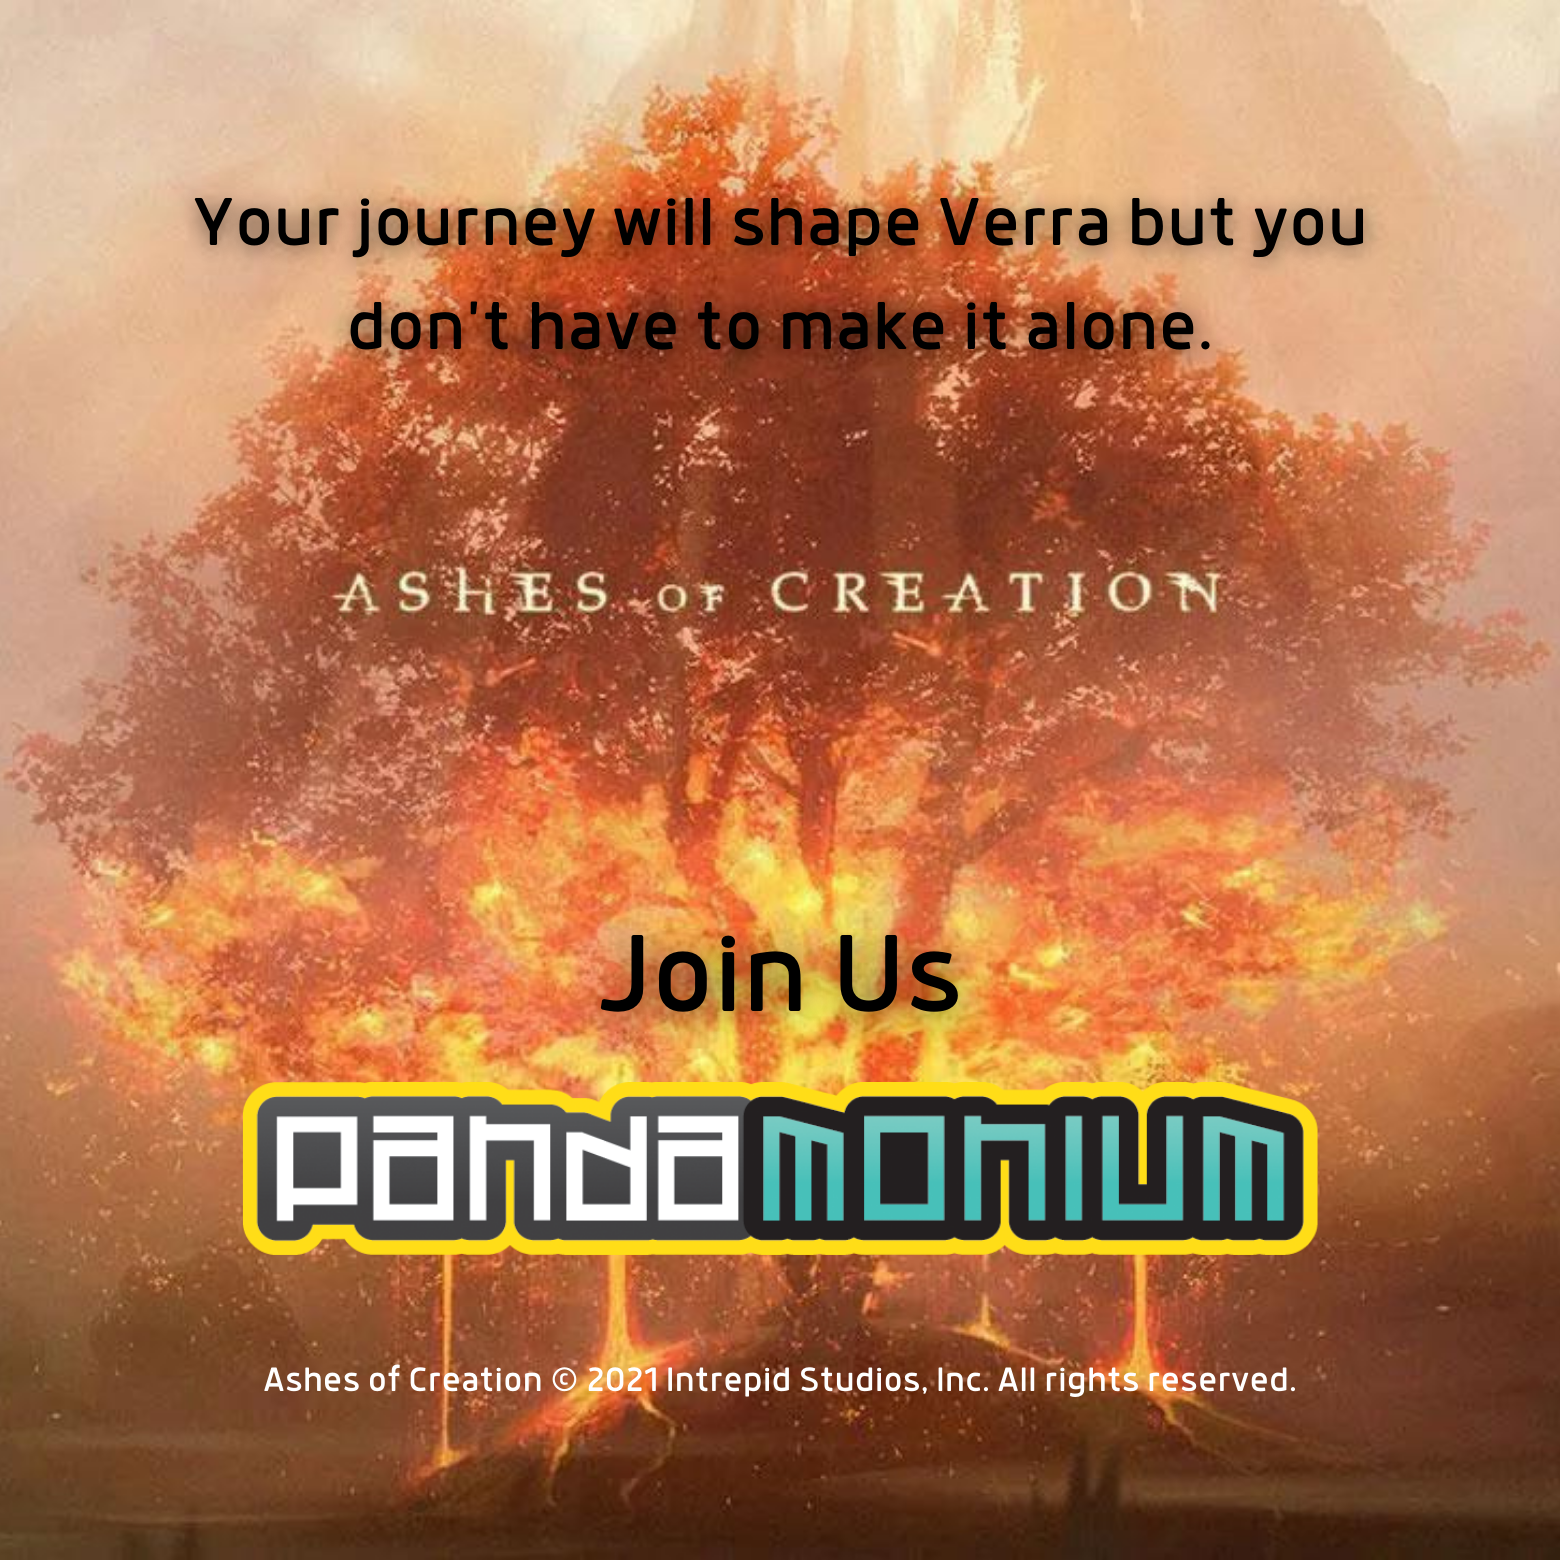 AOC_Pre_Launch_Ad_4.png